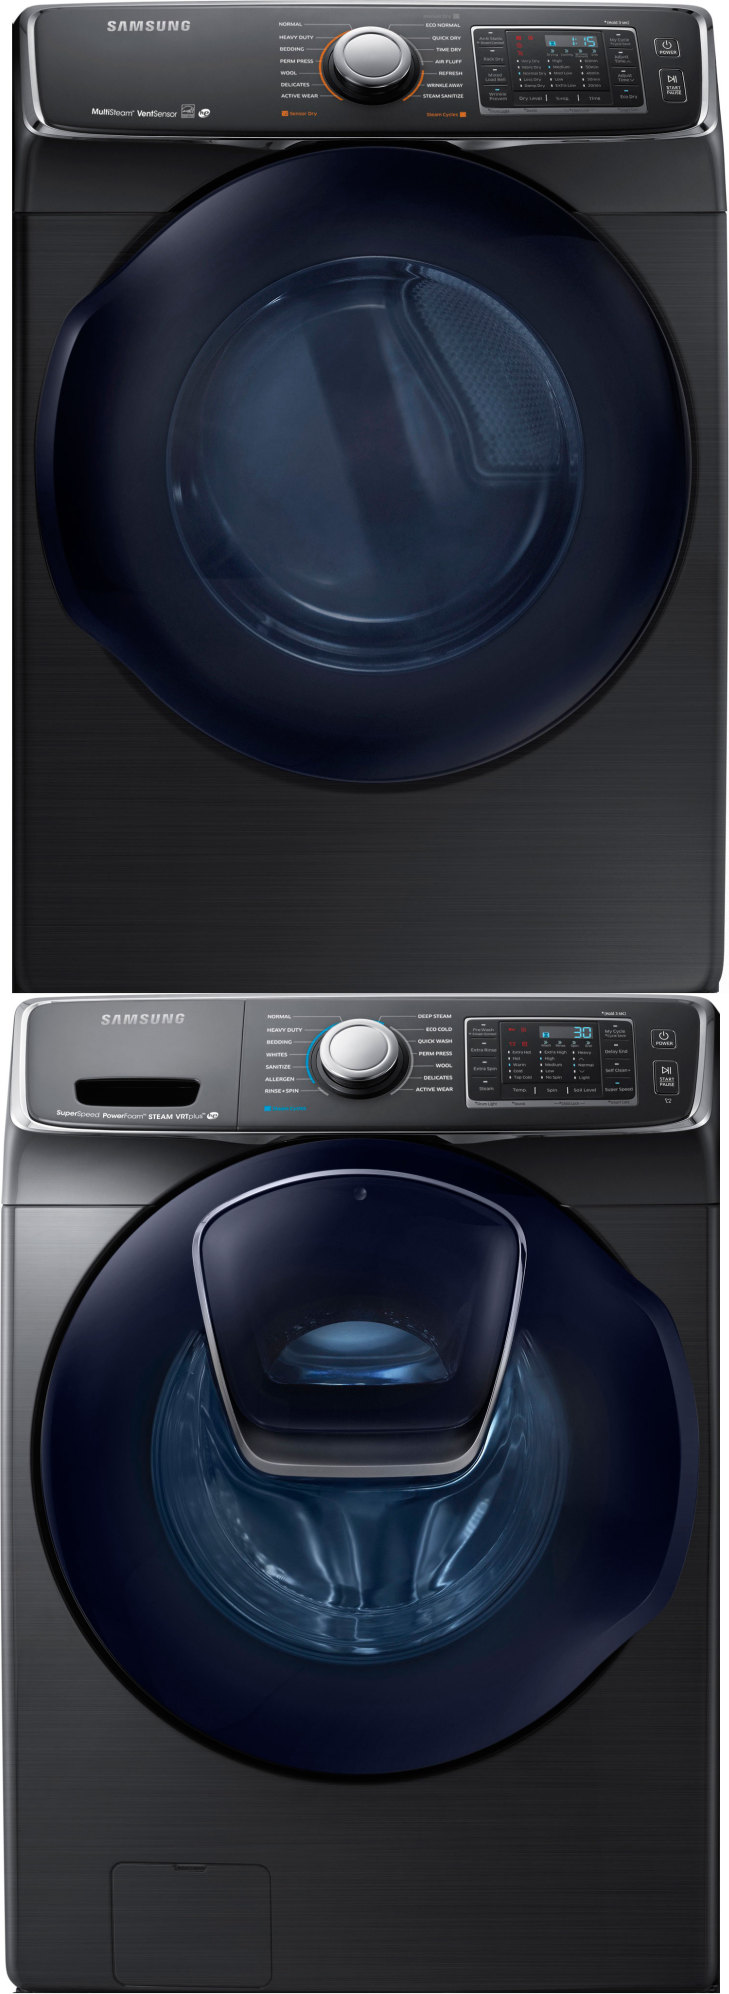 Samsung WF50K7500AV Front Load Washer DV50K7500EV Electric Dryer w